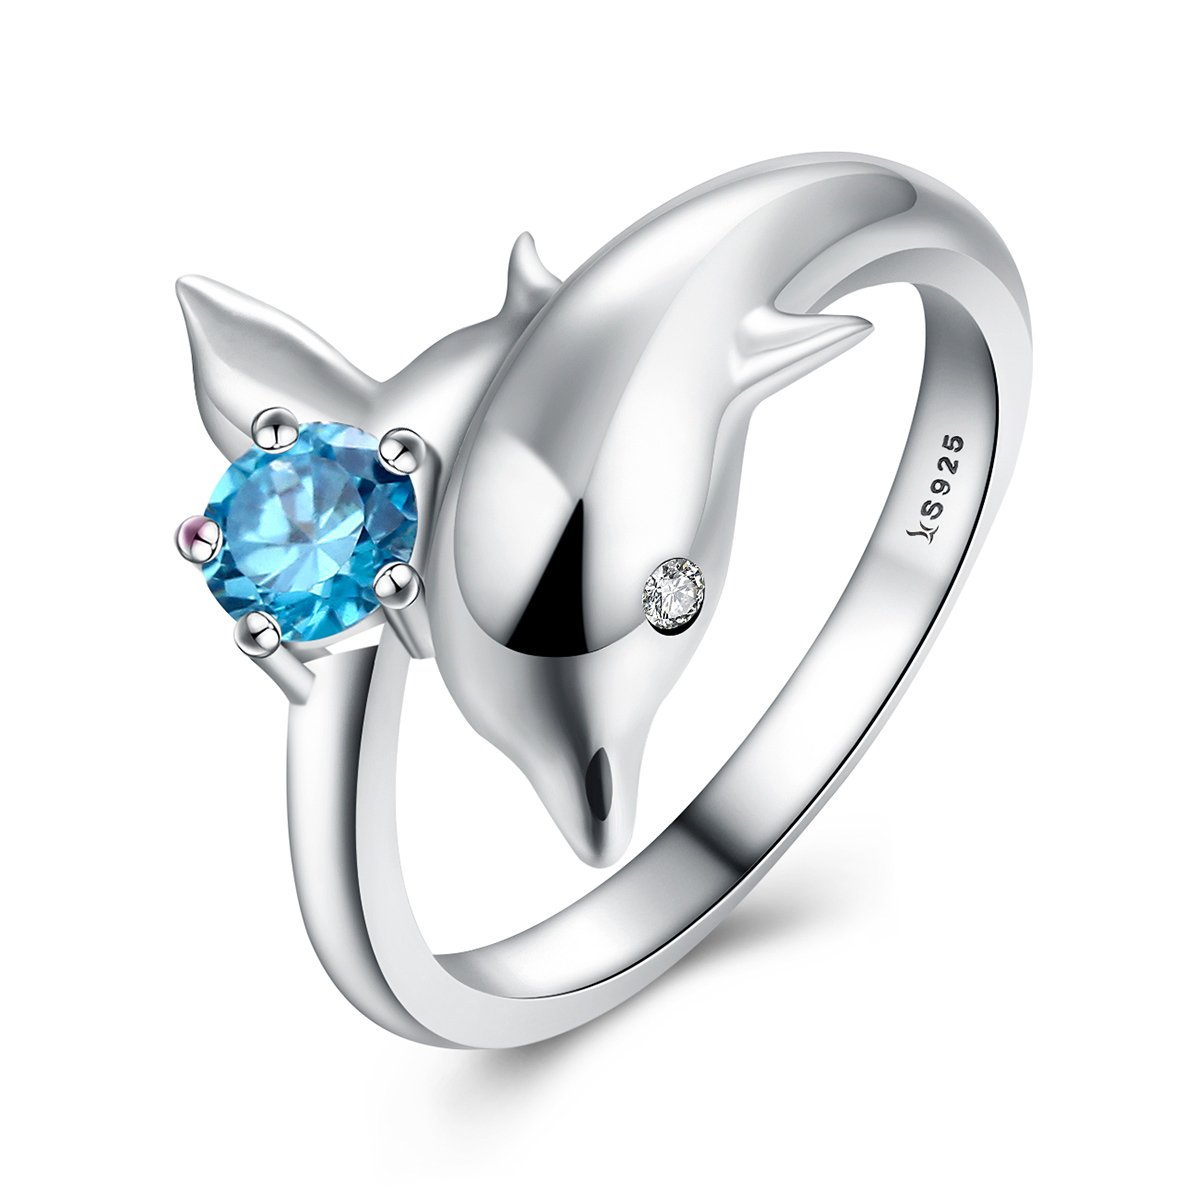 Everbling Dolphin's Love 925 Sterling Silver Ring, Blue CZ